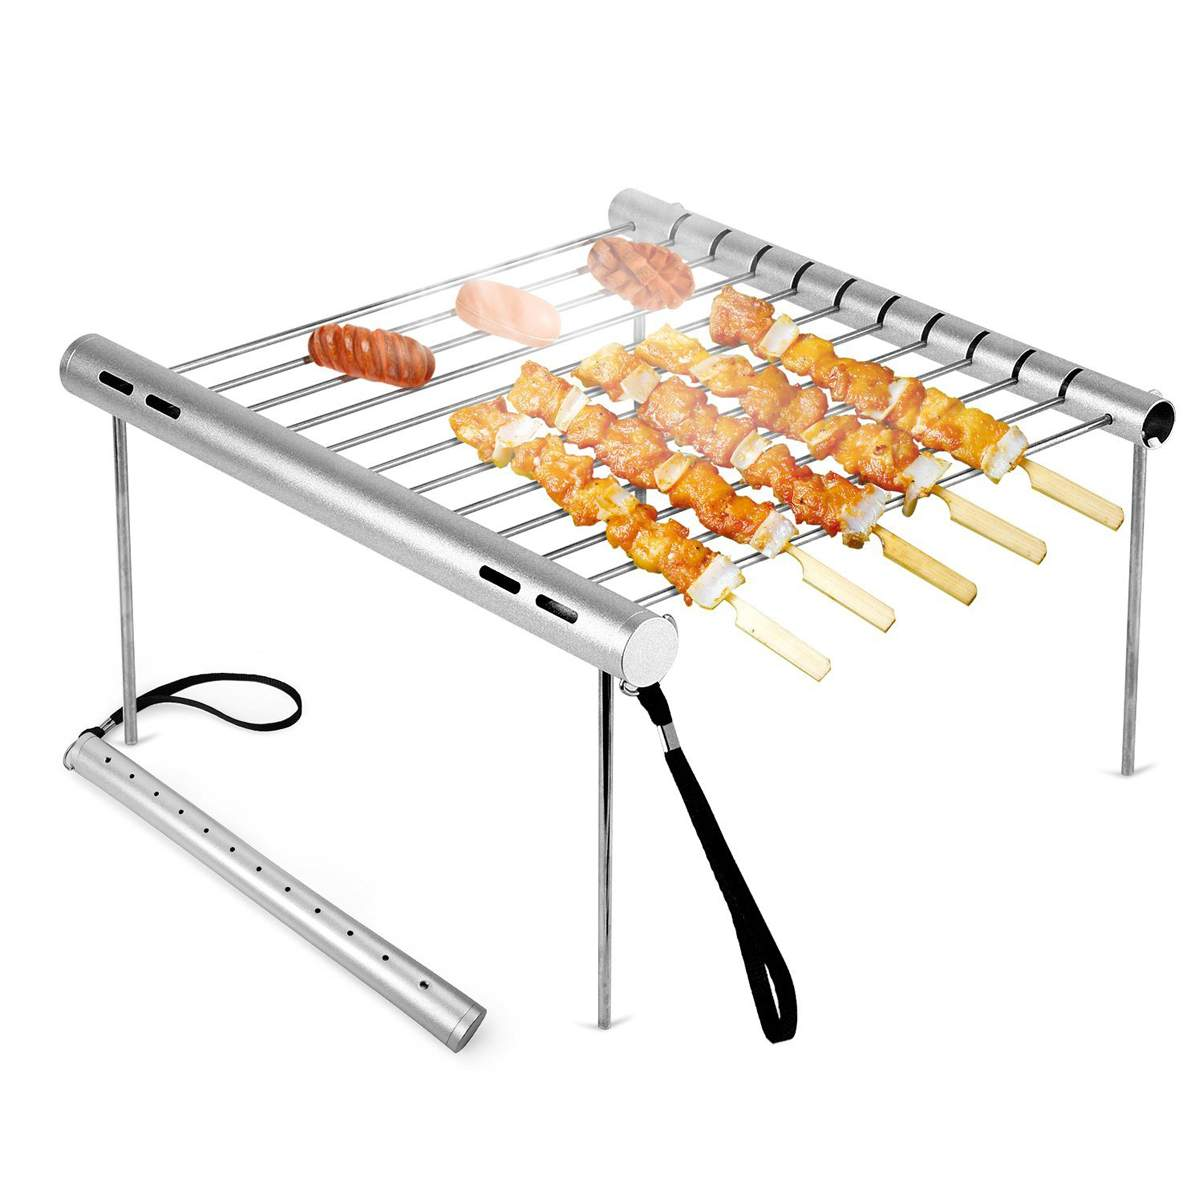 Outdoor Portable Folding Stainless Steel Barbecue Grill Camping Picnic BBQ Rack Mini Pocket BBQ Grill Barbecue Accessories 2